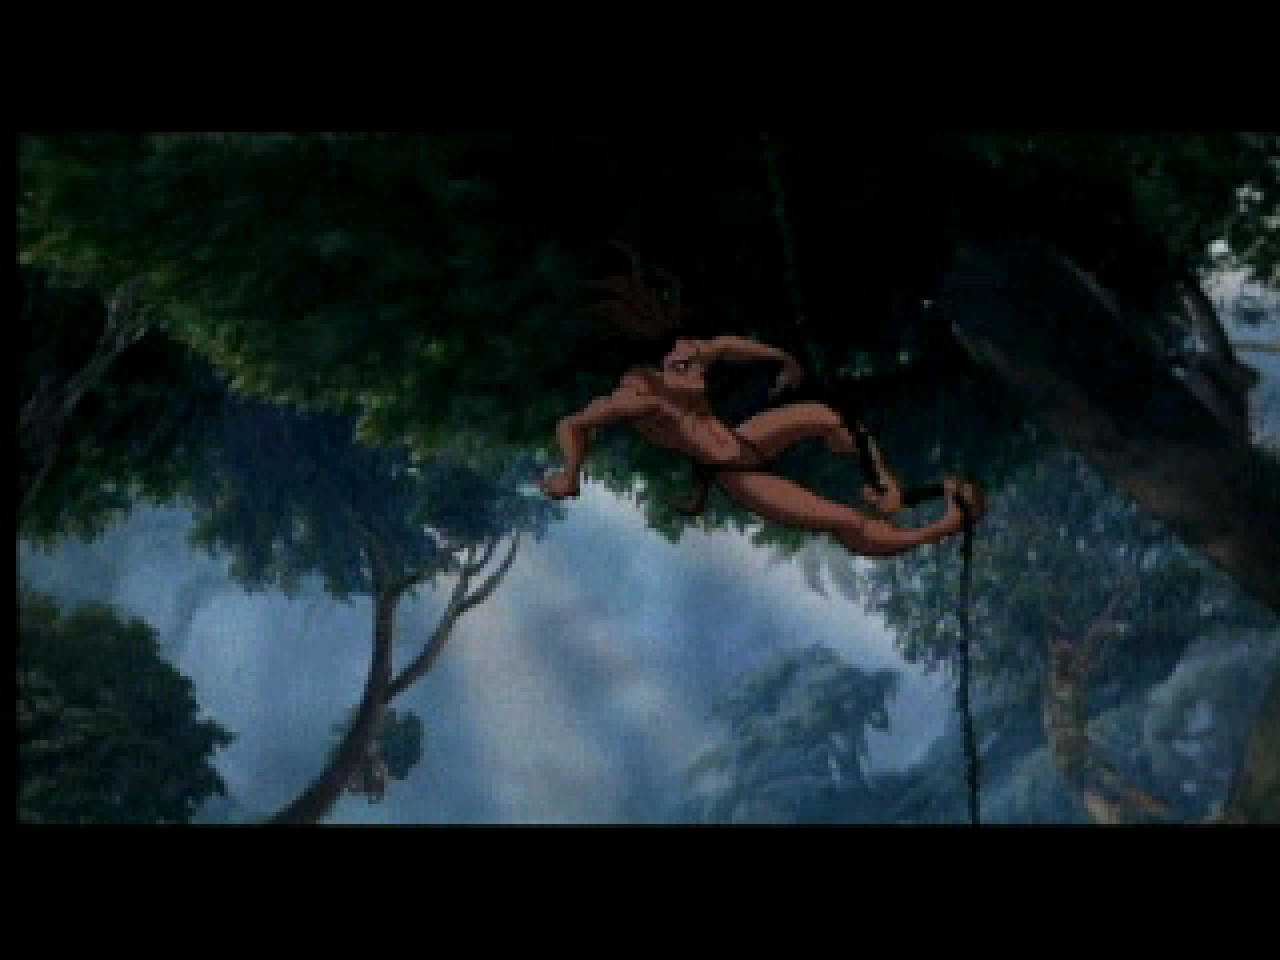 https://s3.eu-west-3.amazonaws.com/games.anthony-dessalles.com/Disney's Tarzan PS1 2020 - Screenshots/Disney's Tarzan-201122-174559.png